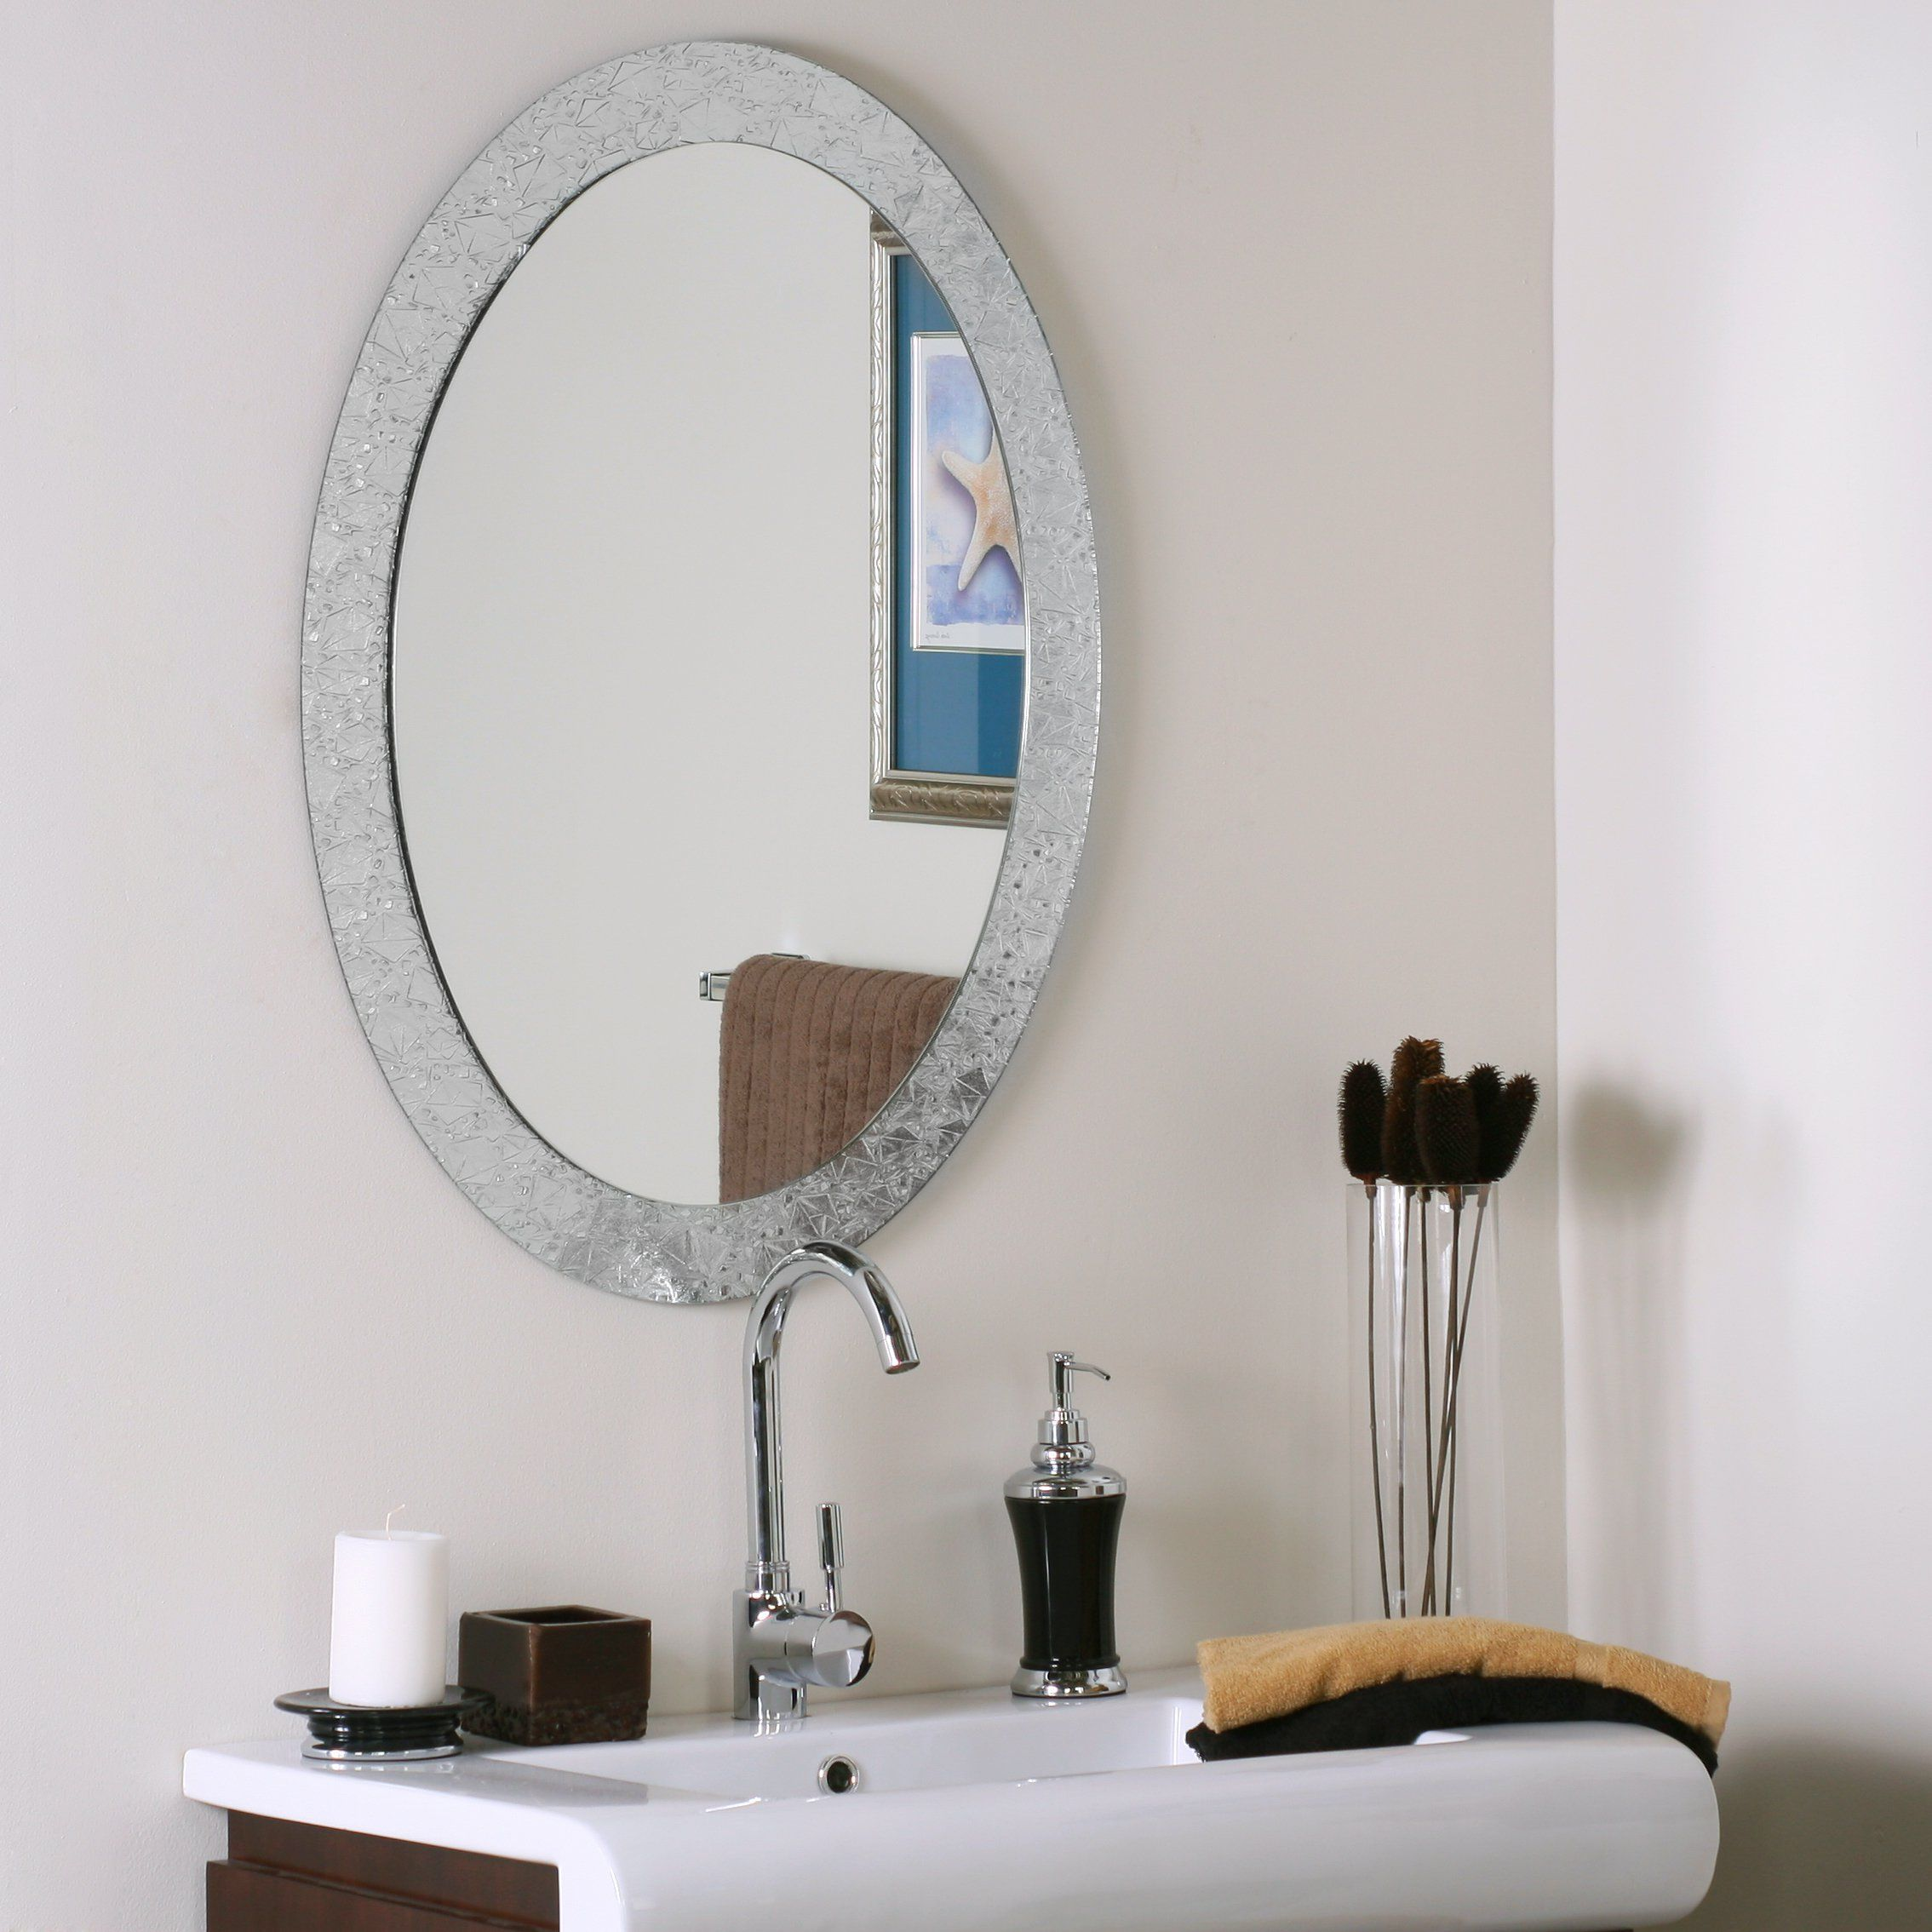 25+ Best Bathroom Mirror Ideas For a Small Bathroom | Bathroom ...